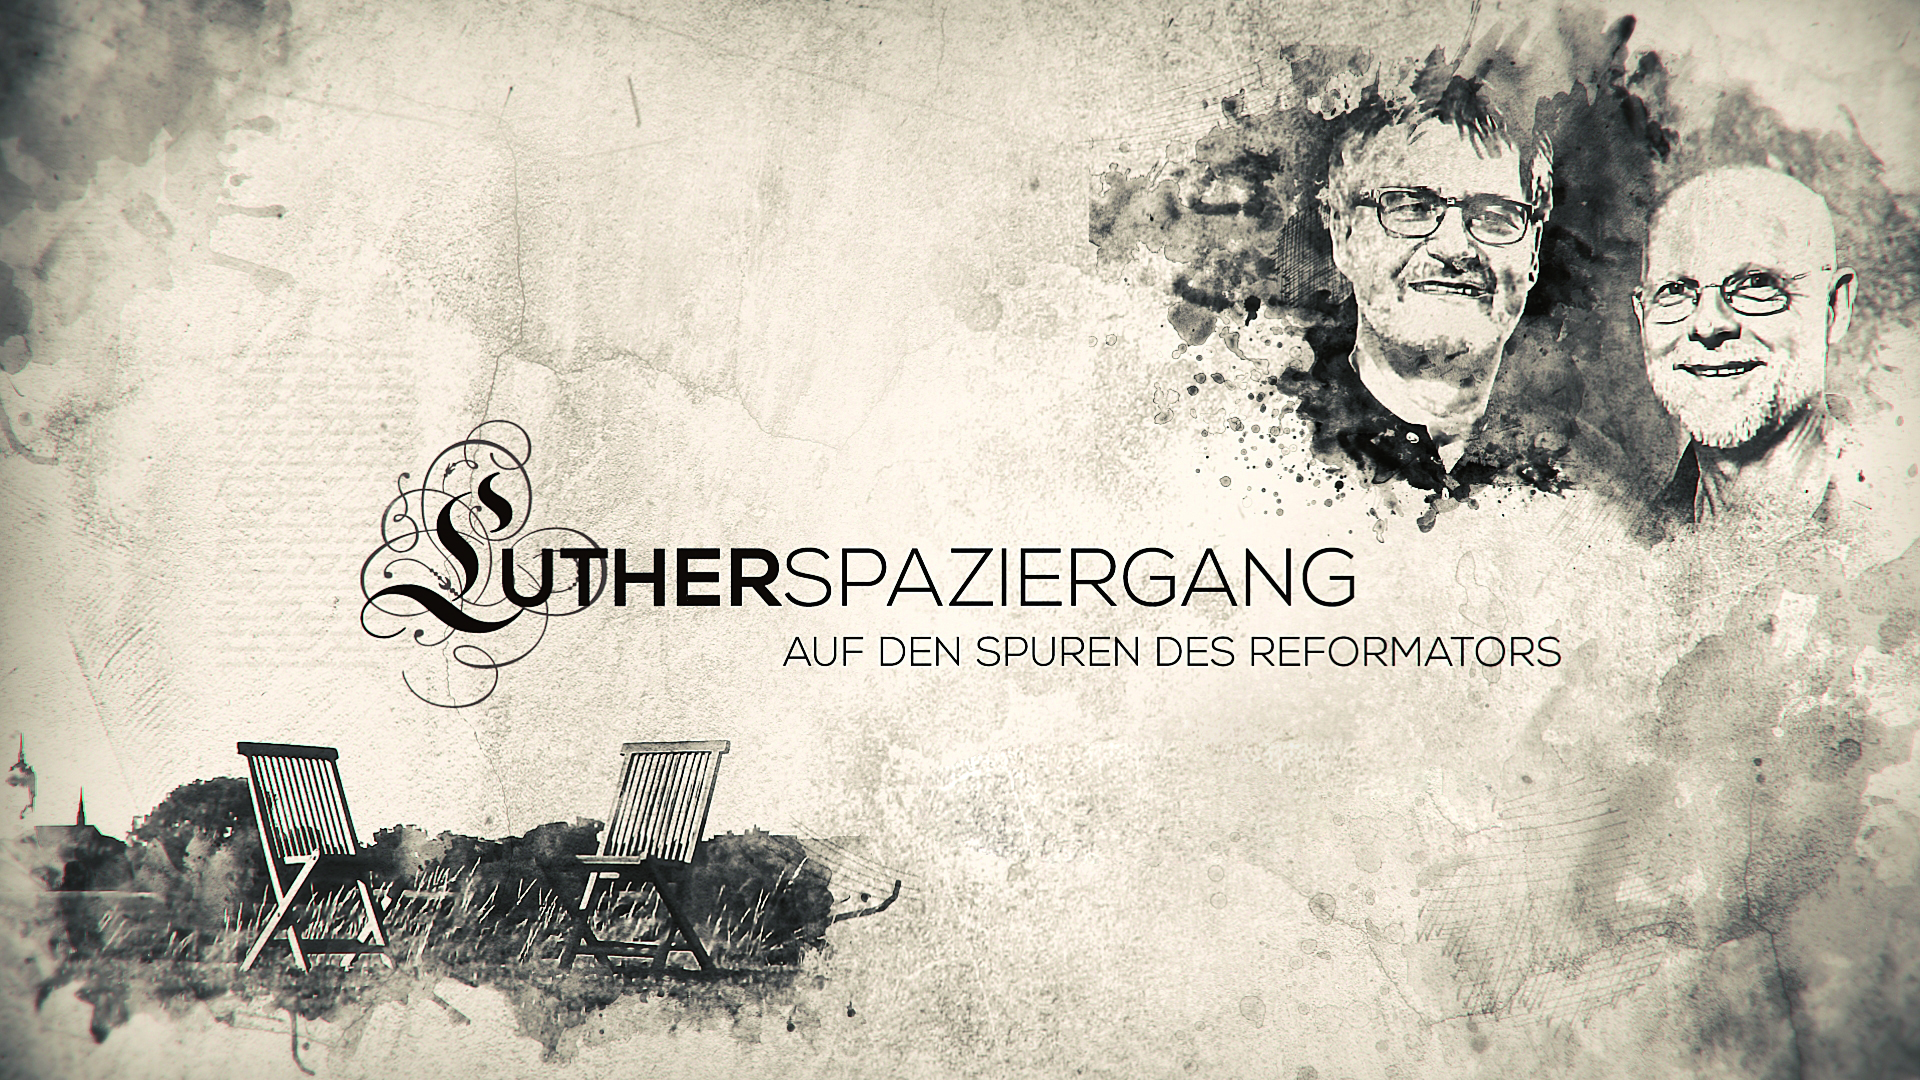 Lutherspaziergang